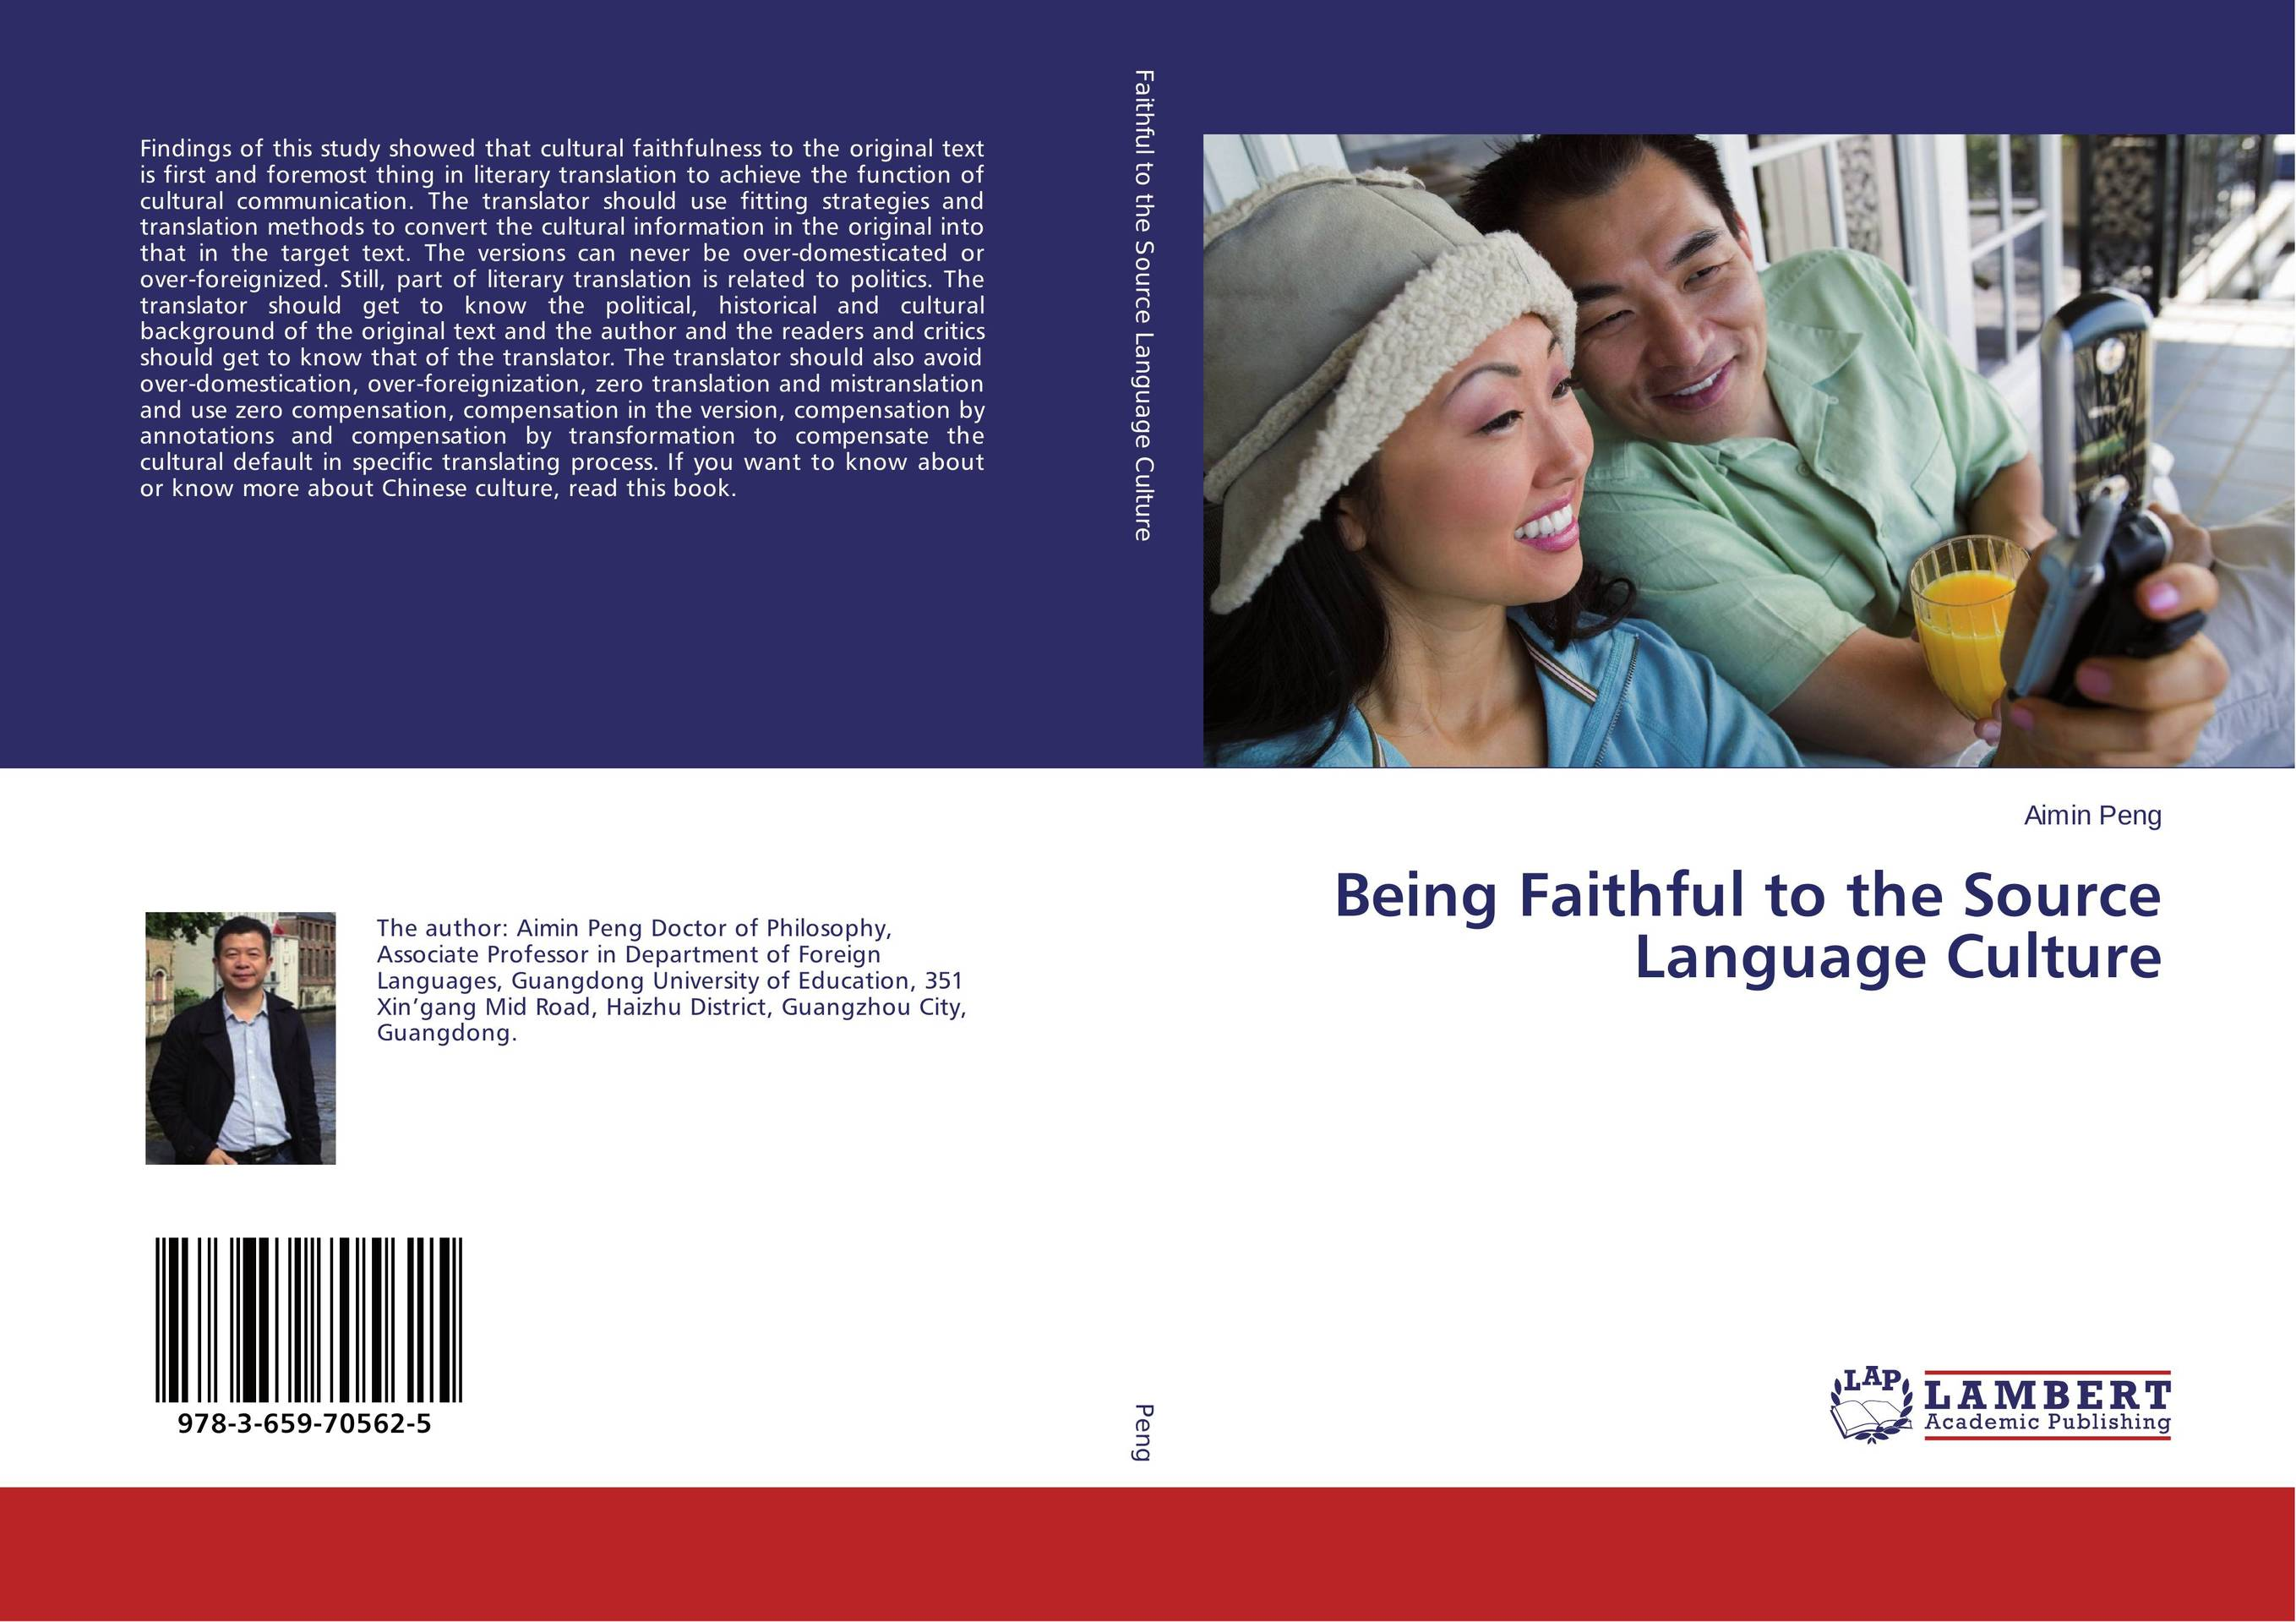 Being Faithful to the Source Language Culture e hutchins culture and inference – a trobriand case study